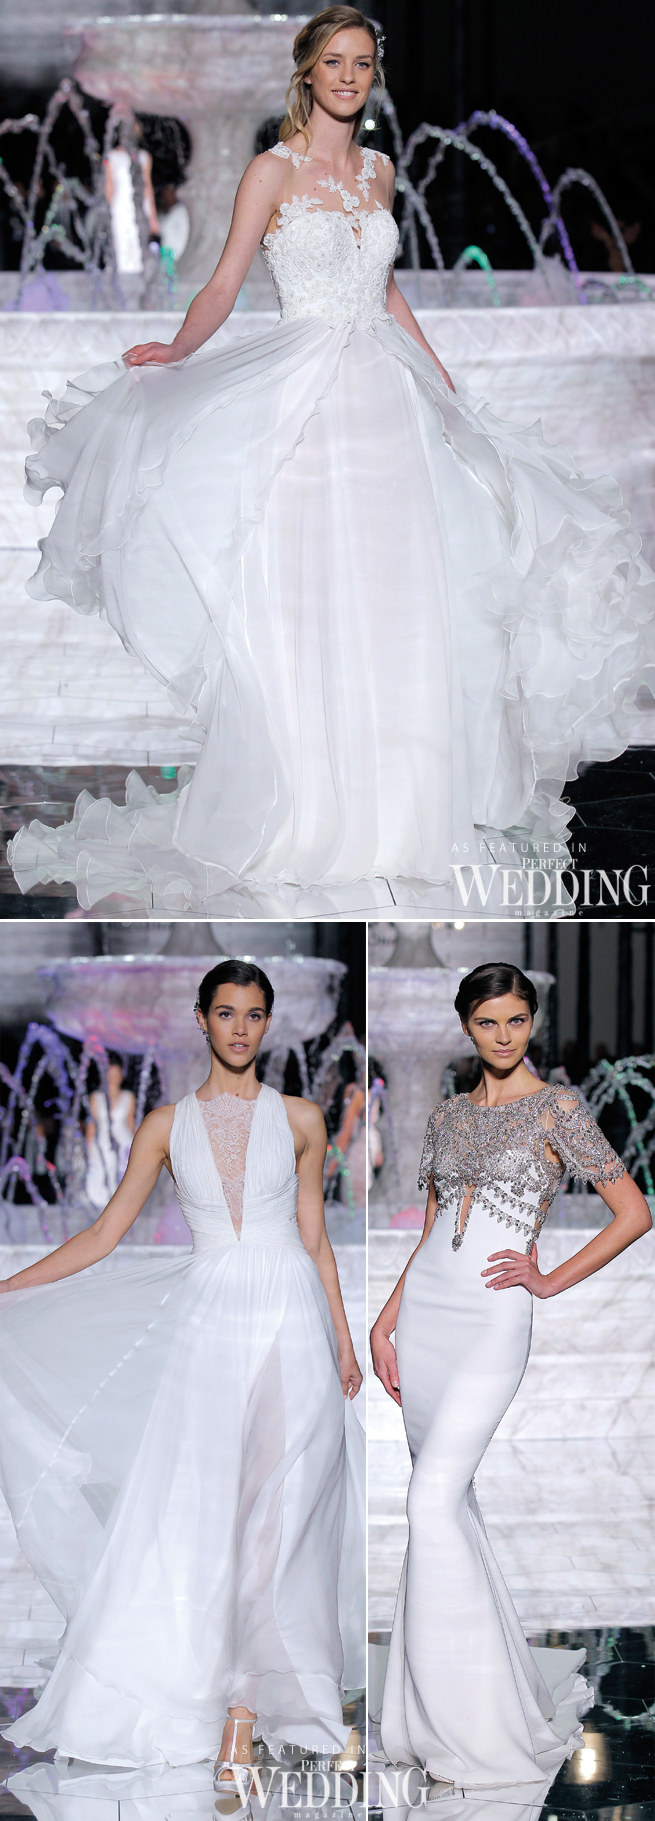 Perfect bride fashion show 26